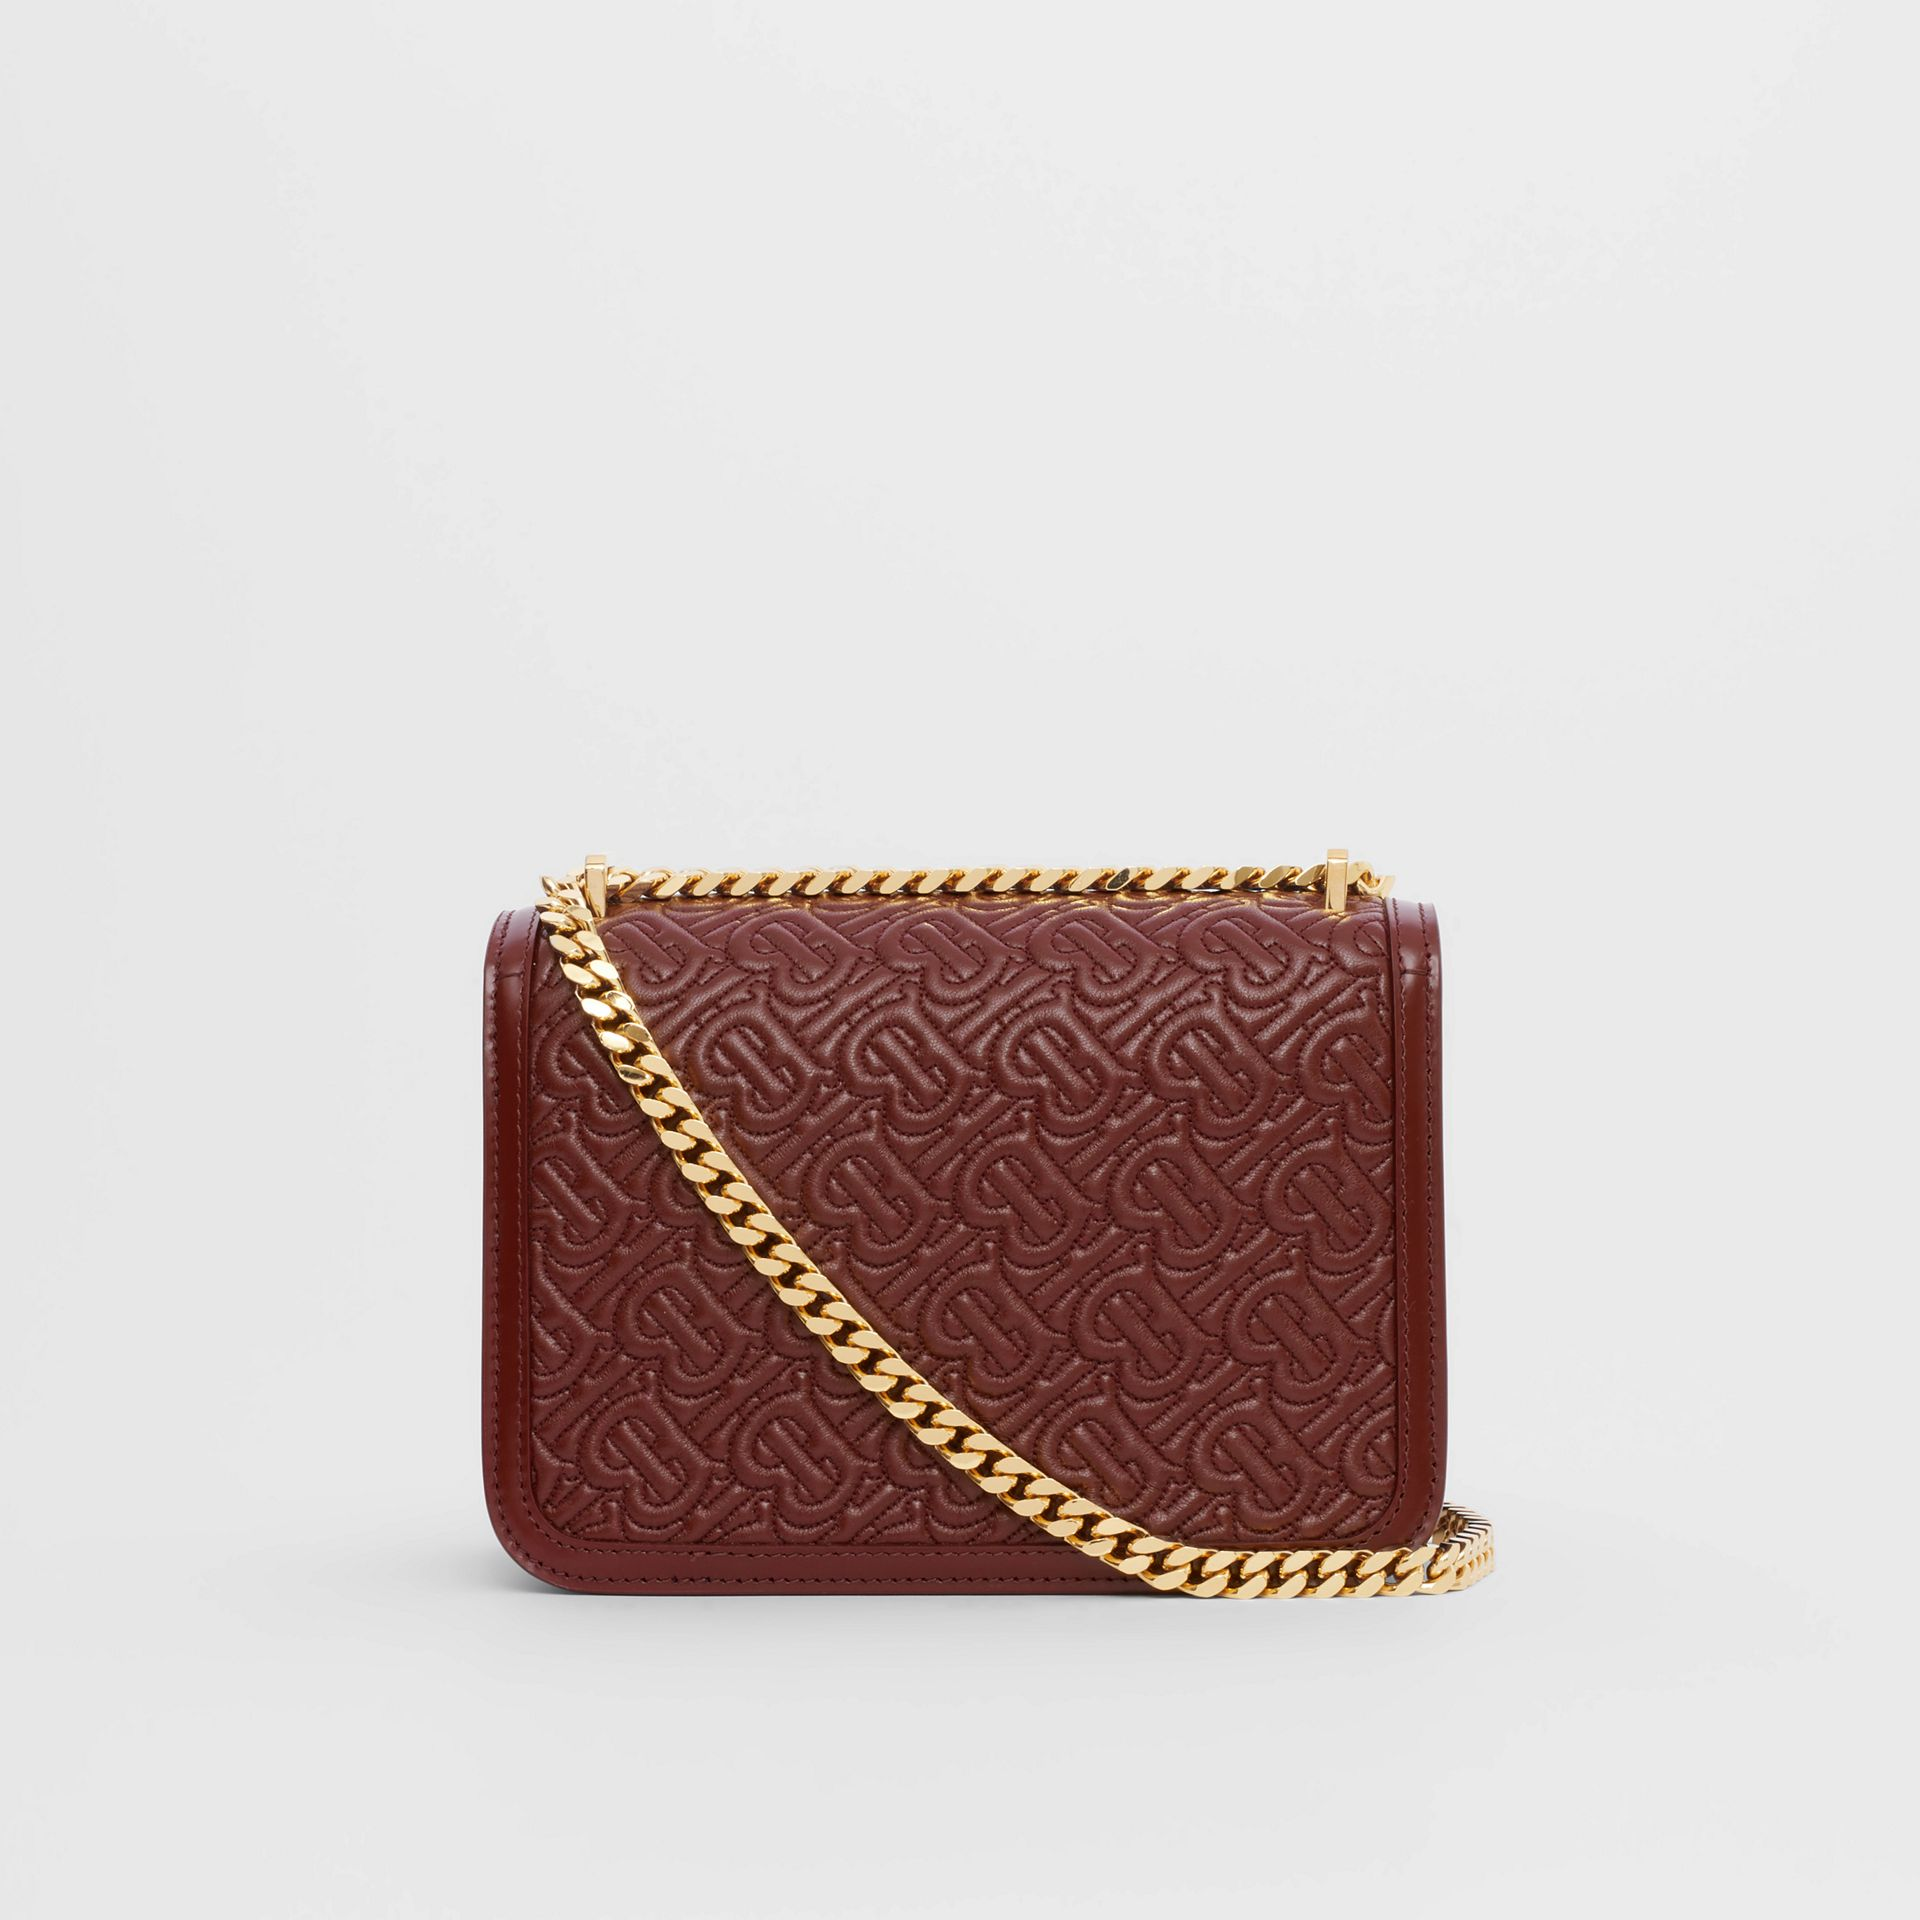 Small Quilted Monogram Lambskin TB Bag in Oxblood - Women | Burberry United Kingdom - gallery image 5